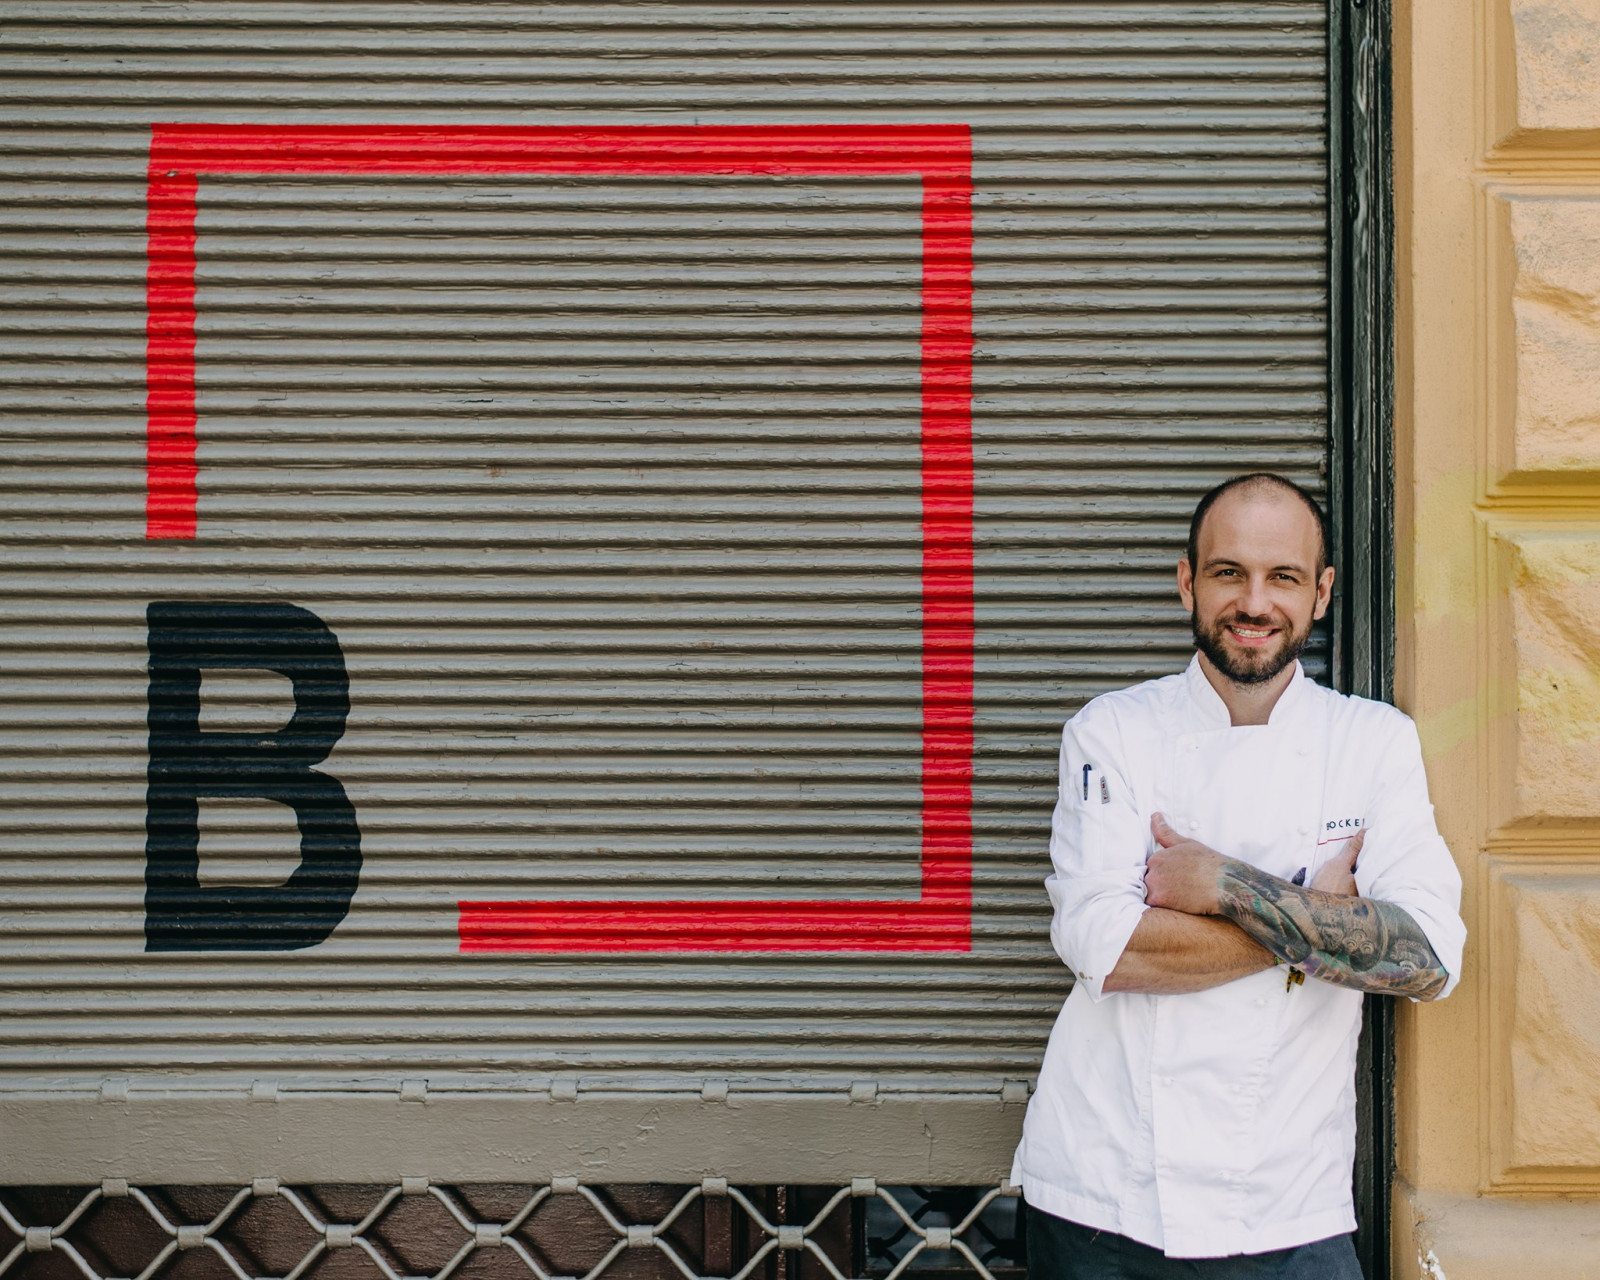 , Top chefs dish on the future of Prague's culinary scene in advance of Monday's re-openings, Expats.cz Latest News & Articles - Prague and the Czech Republic, Expats.cz Latest News & Articles - Prague and the Czech Republic